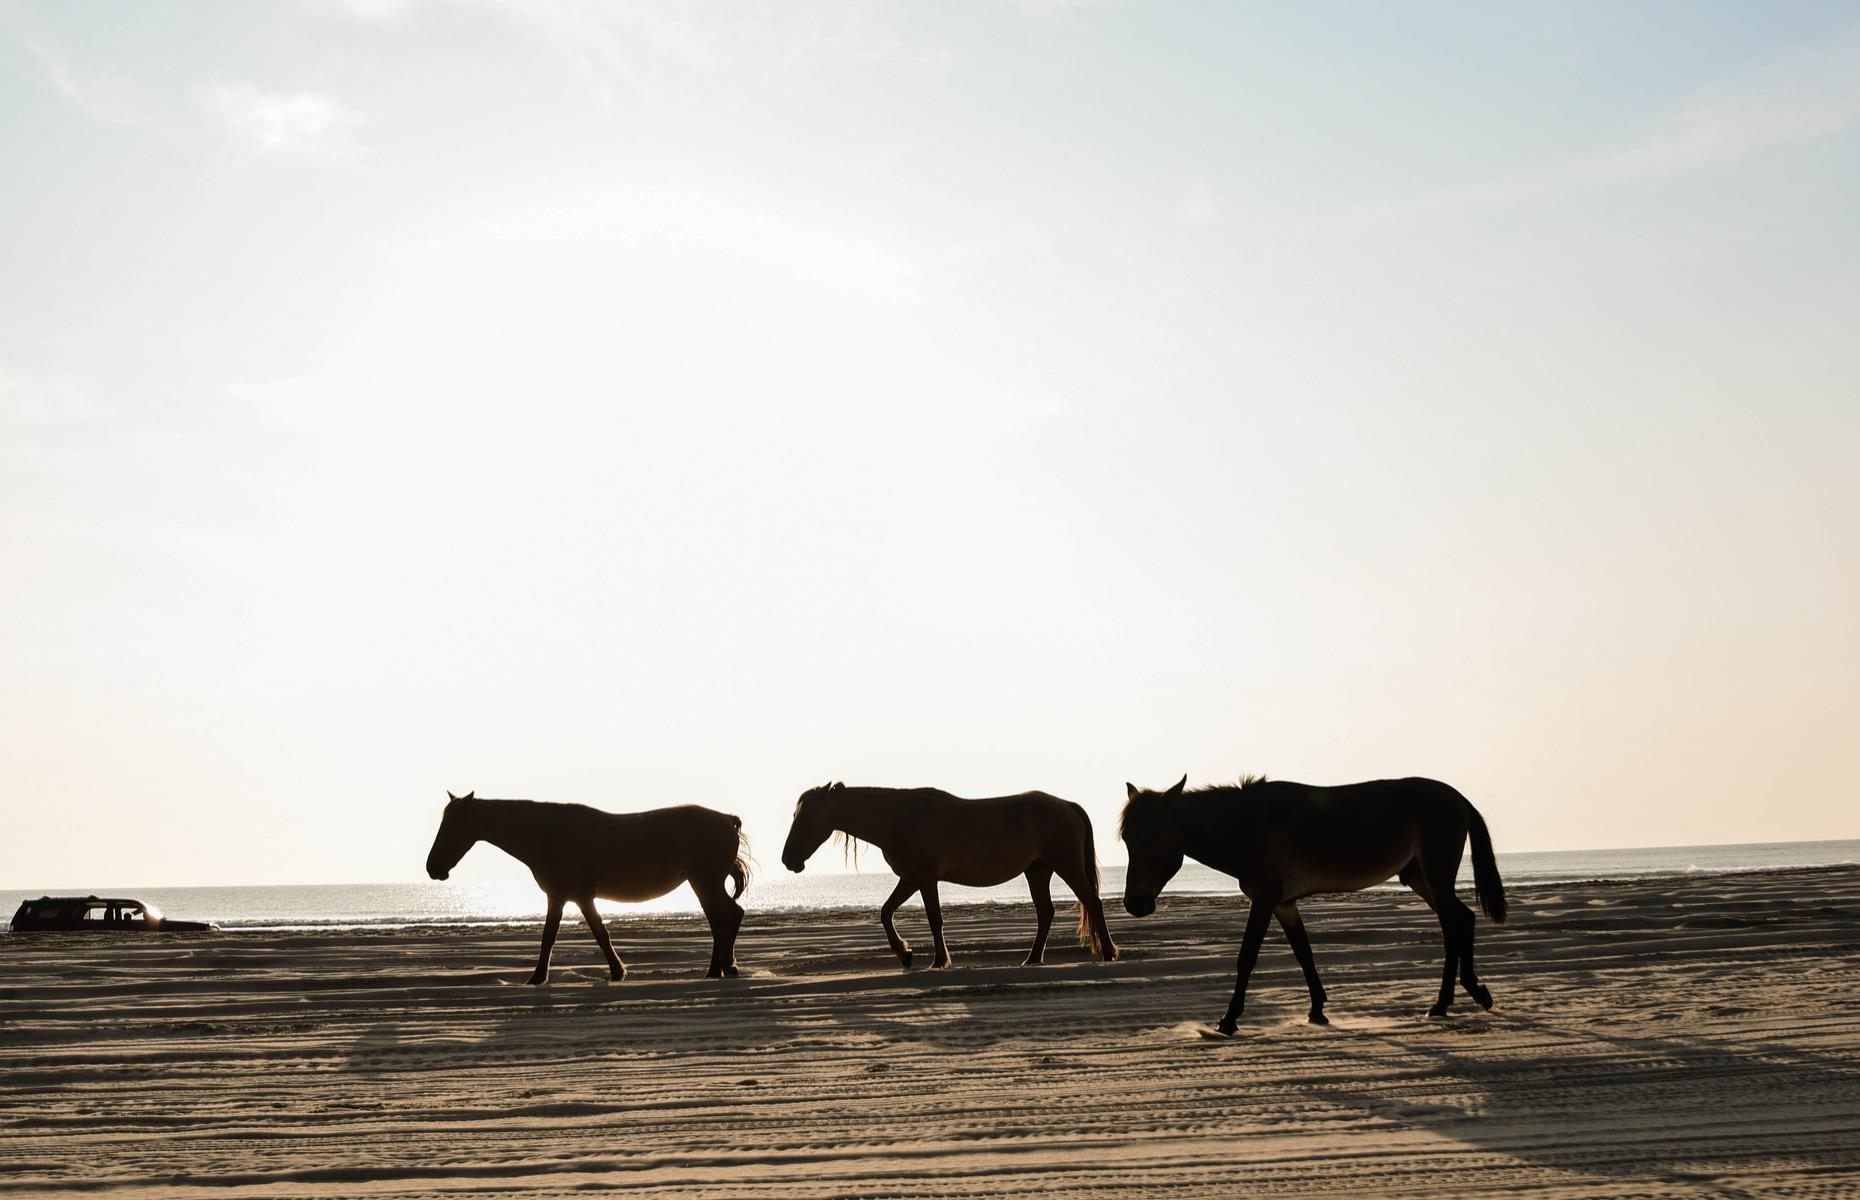 Slide 13 of 32: Herds of wild horses roam the pale beaches and rolling dunes of Carova Beach, a tiny Outer Banks spot. The graceful animals are thought to be descended from Spanish mustangs shipwrecked here in the 1400s. The unspoiled nature of the place has allowed them to live freely here for centuries.